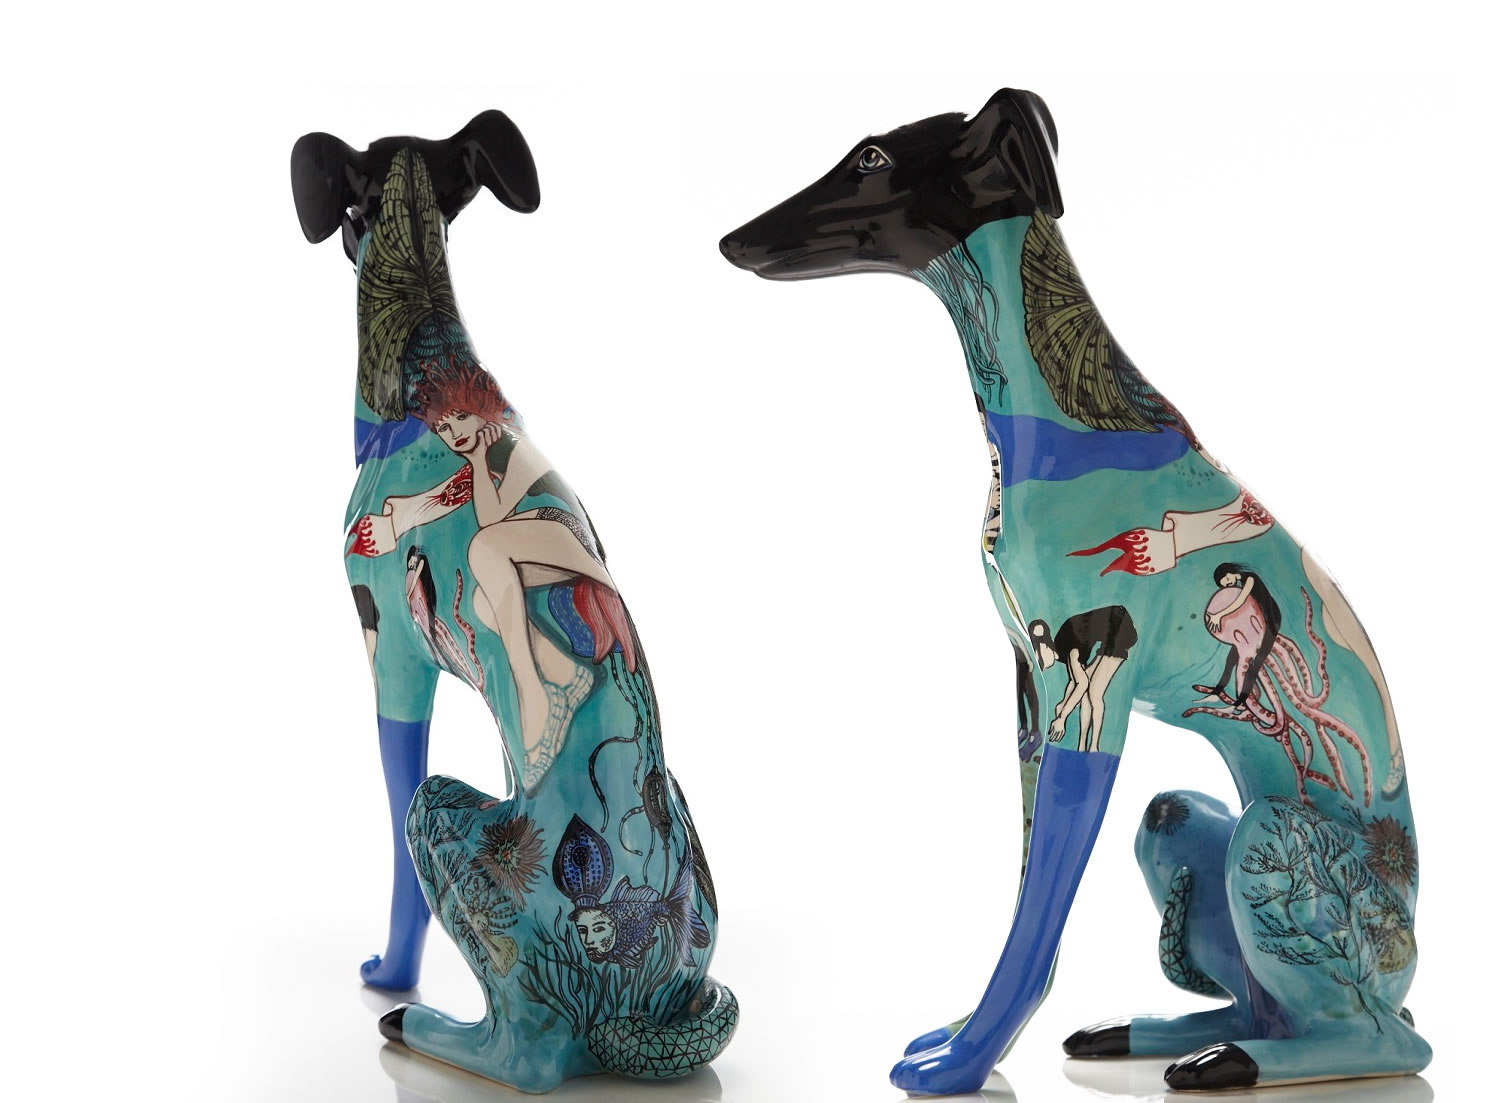 Painted Ceramic Greyhounds by Evelyn Tannus